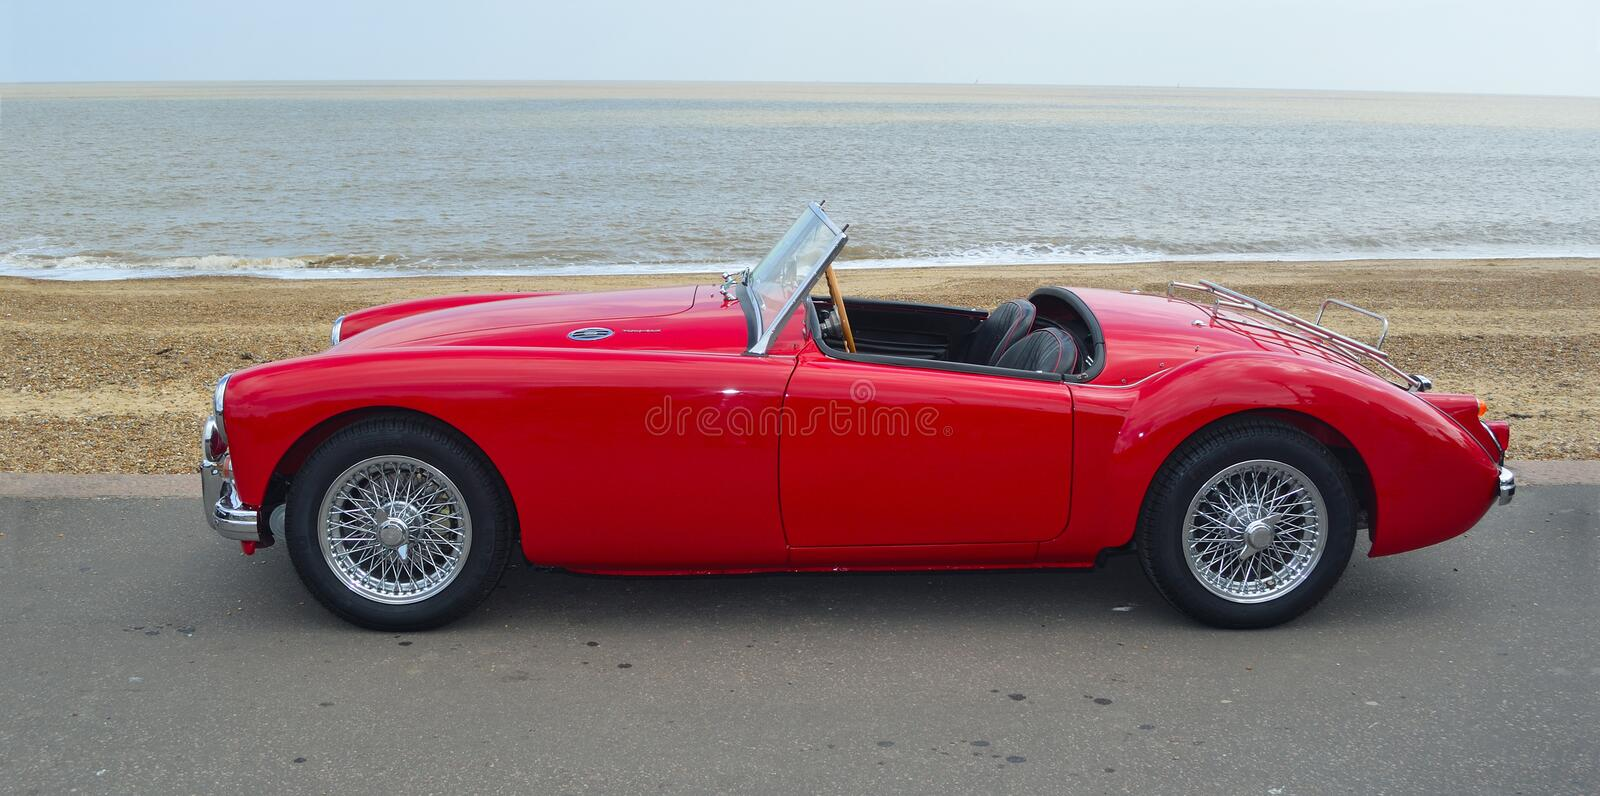 Classic Red MGA Car parked on seafront promenade with sea in background. stock image